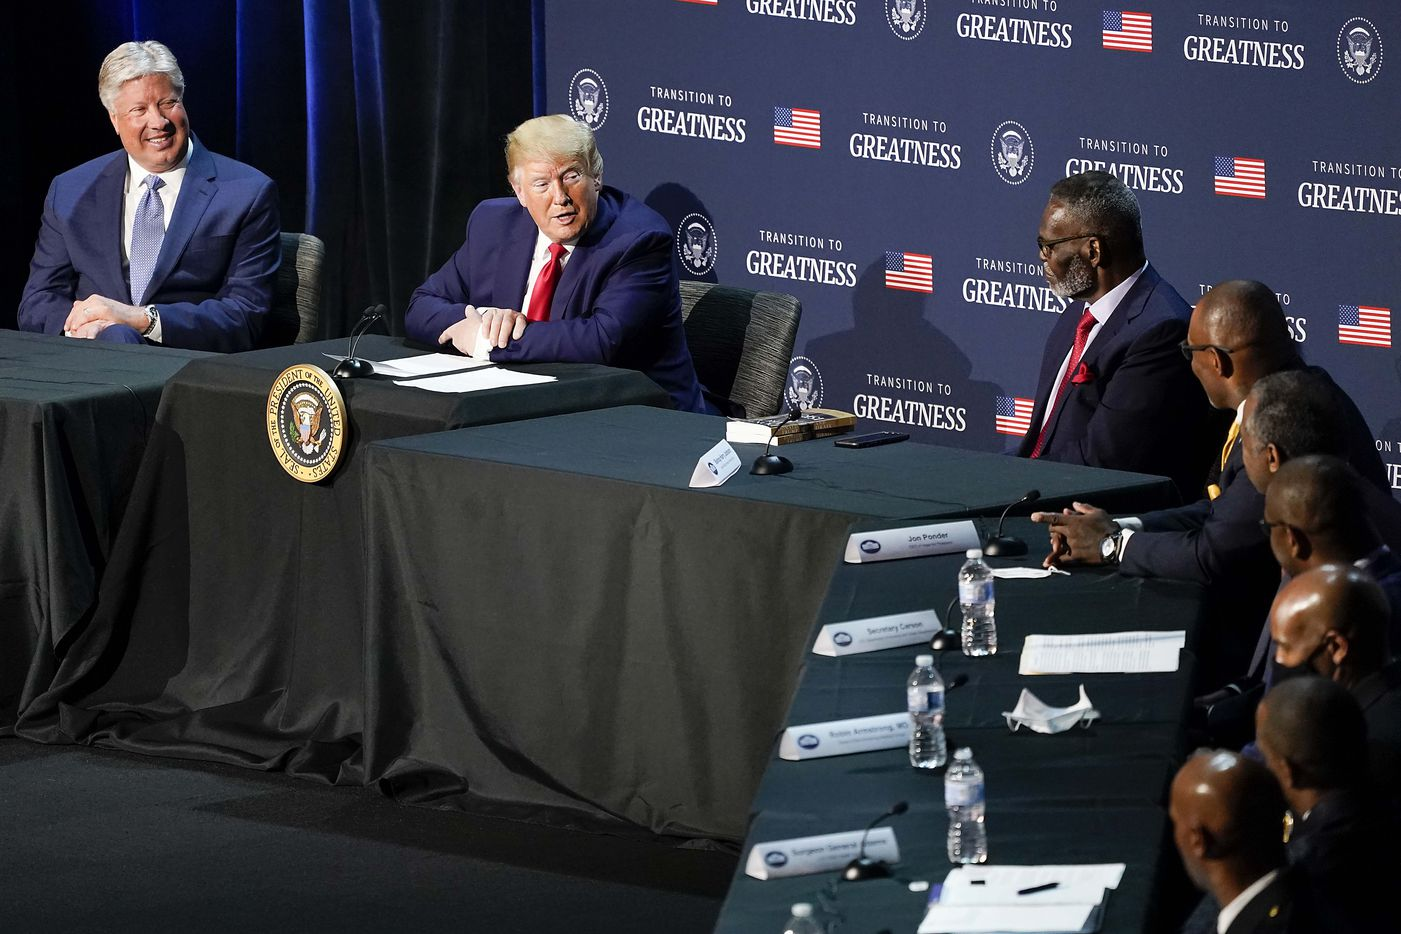 President Donald Trump participates in a roundtable conversation about race relations and policing at Gateway Church Dallas Campus on Thursday, June 11, 2020, in Dallas. (Smiley N. Pool/The Dallas Morning News)